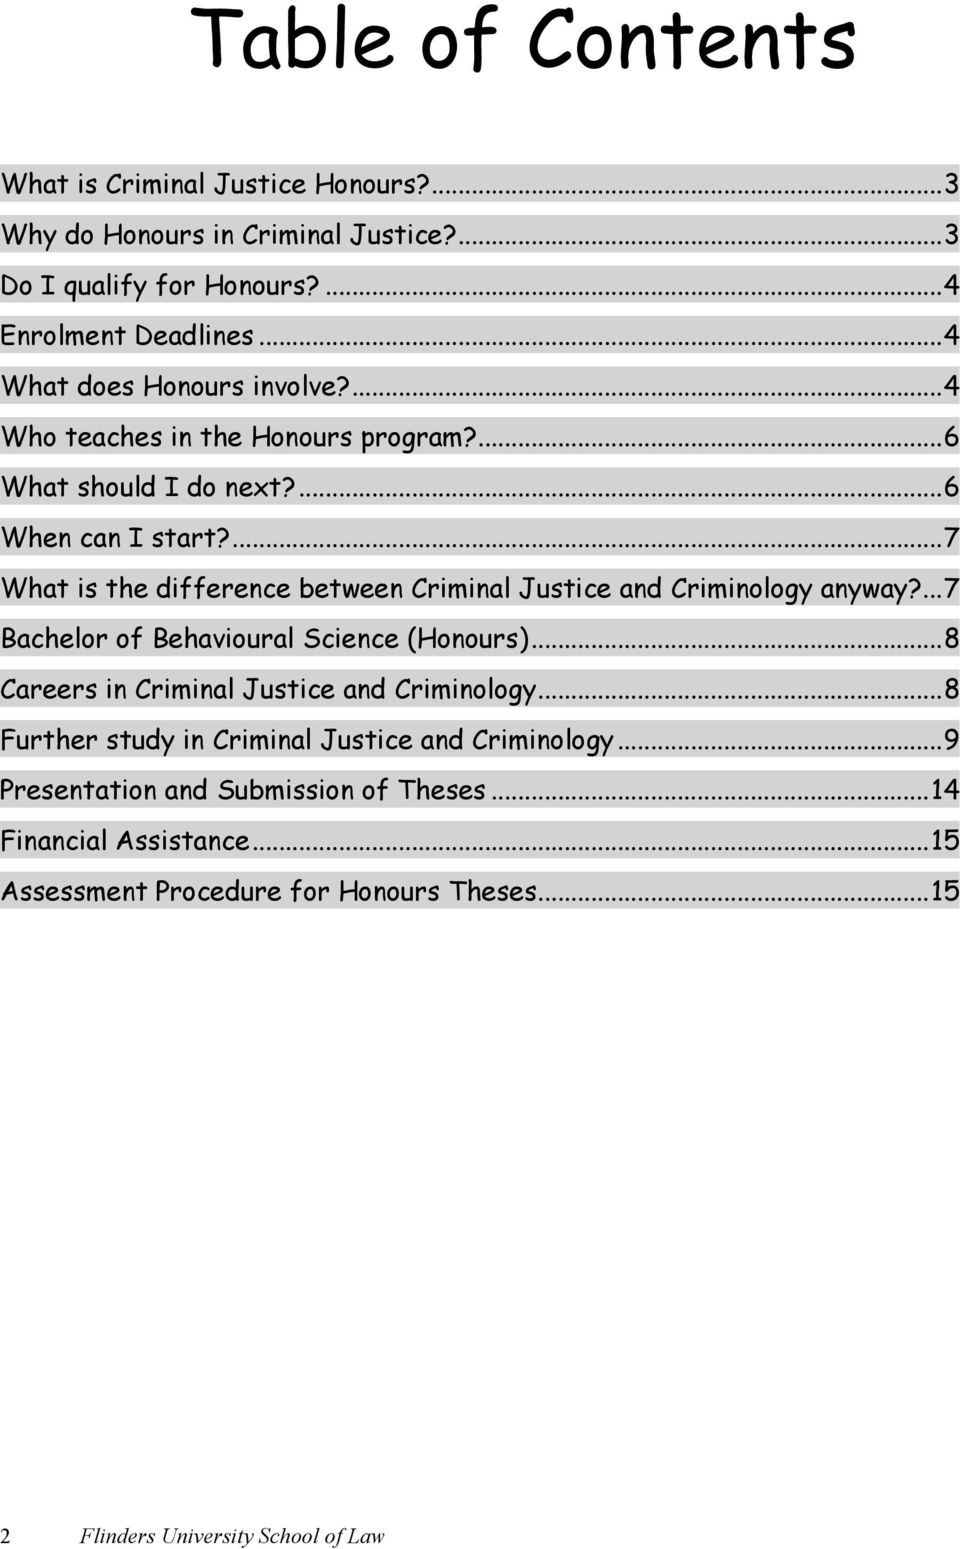 ... 7 What is the difference between Criminal Justice and Criminology anyway?... 7 Bachelor of Behavioural Science (Honours).